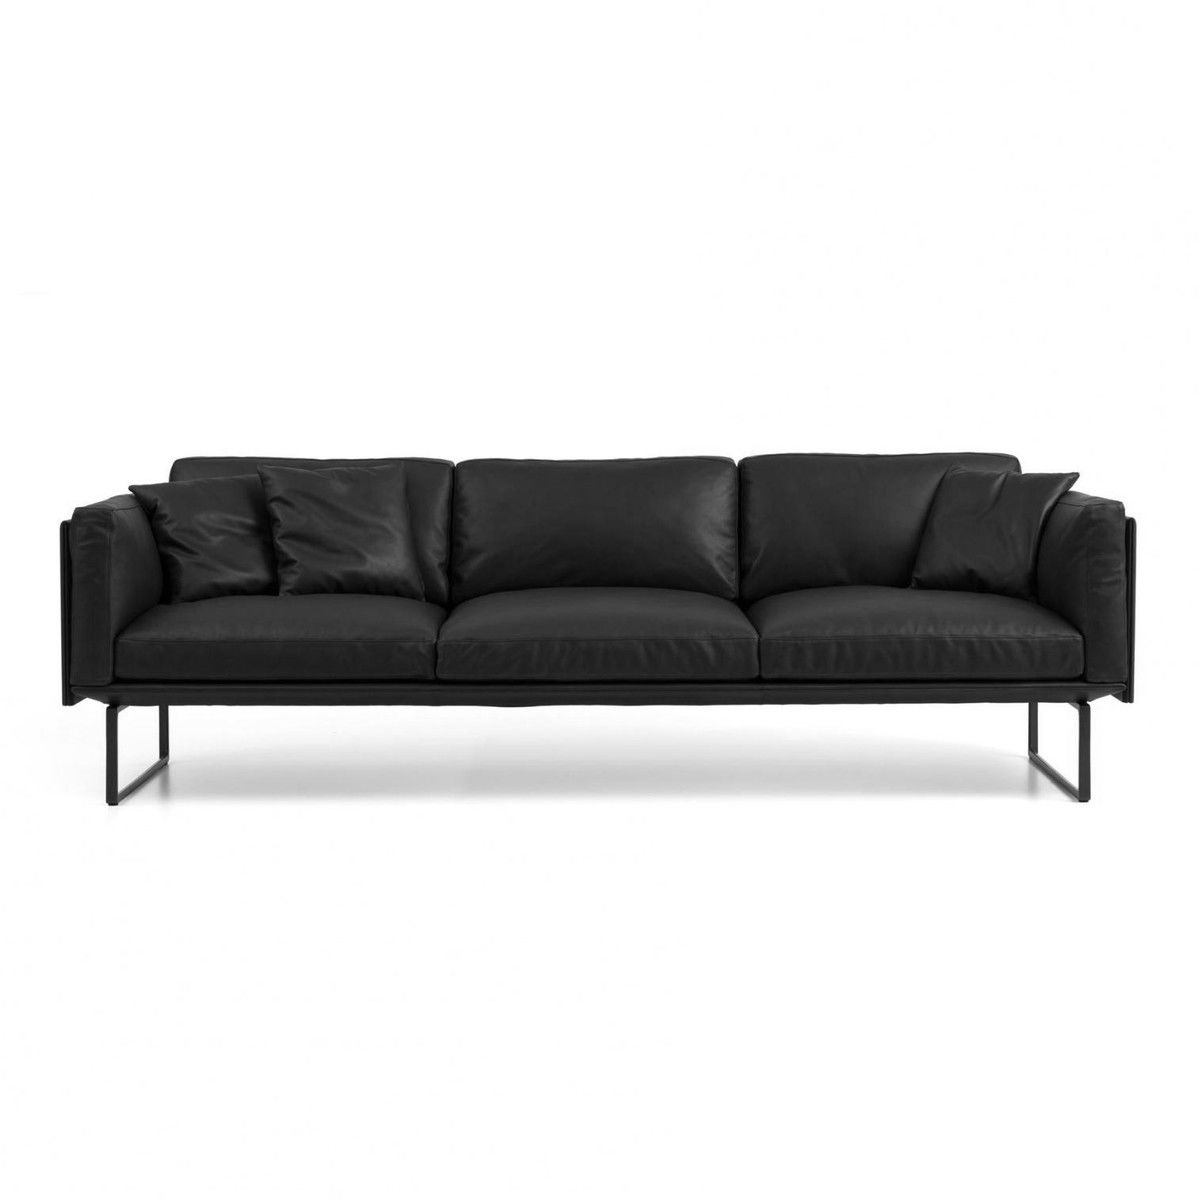 8 Piero Lissoni 3-Seater Leather Sofa  Cassina ...